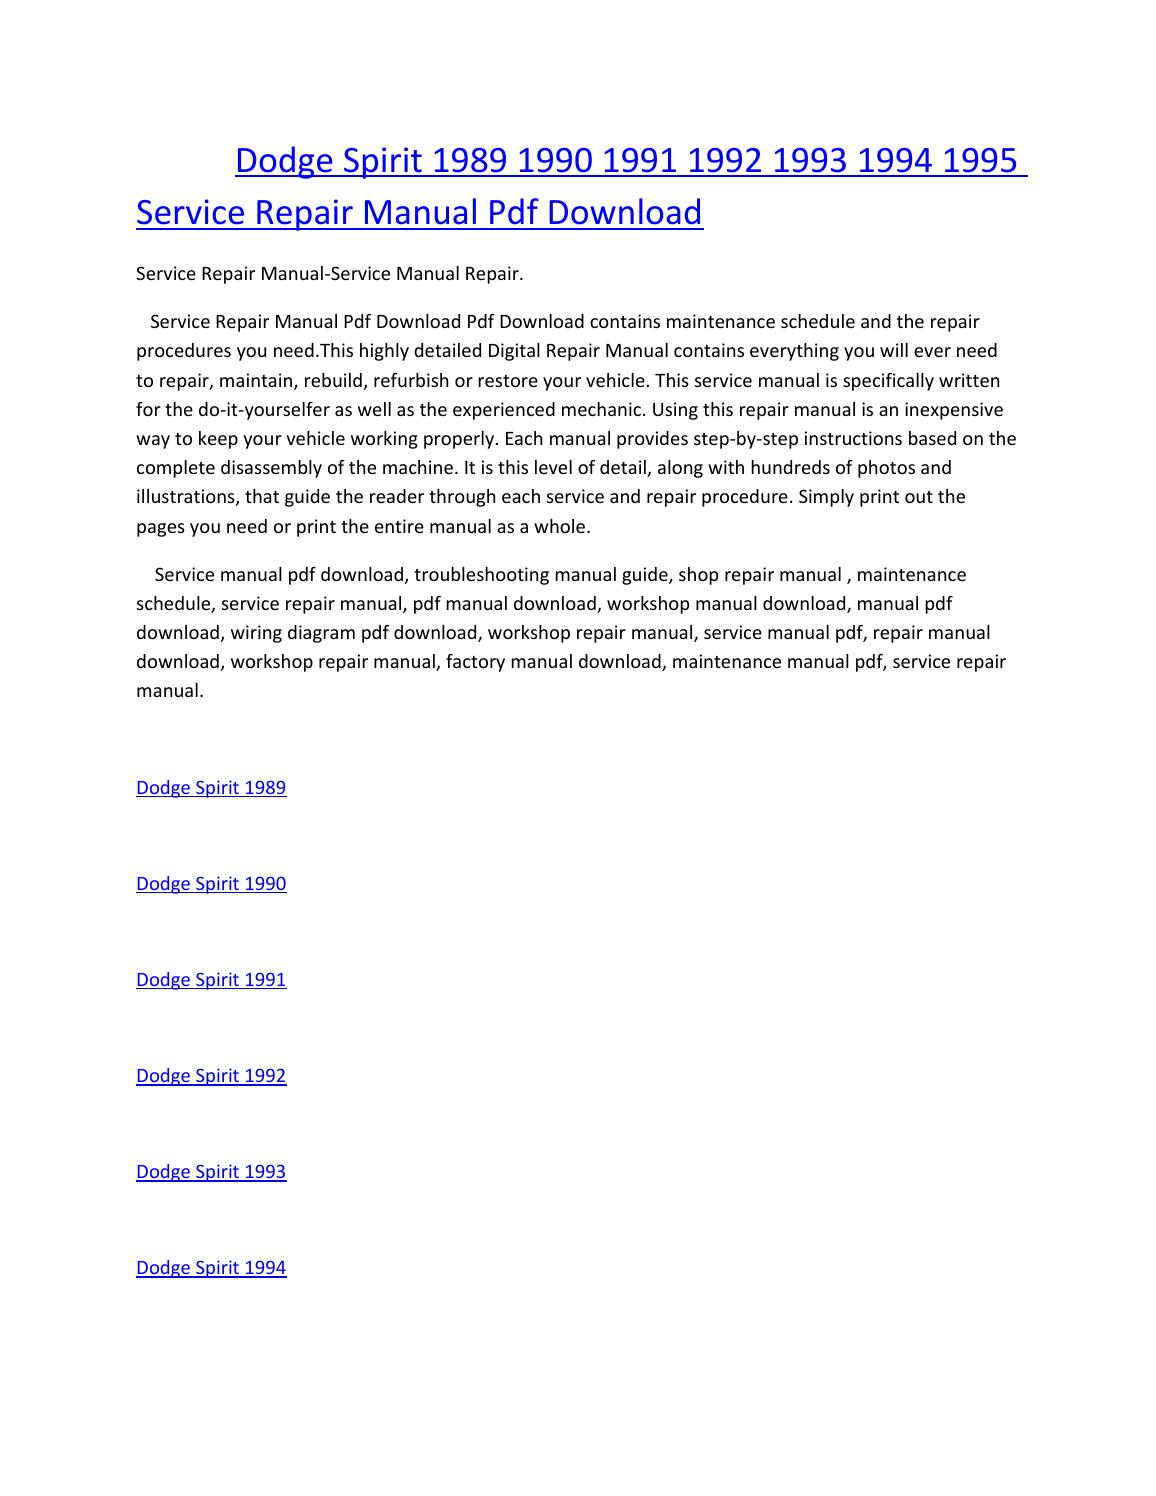 Dodge spirit 1989 1990 1991 1992 1993 1994 1995 service manual repair pdf  download by amurgului - issuu